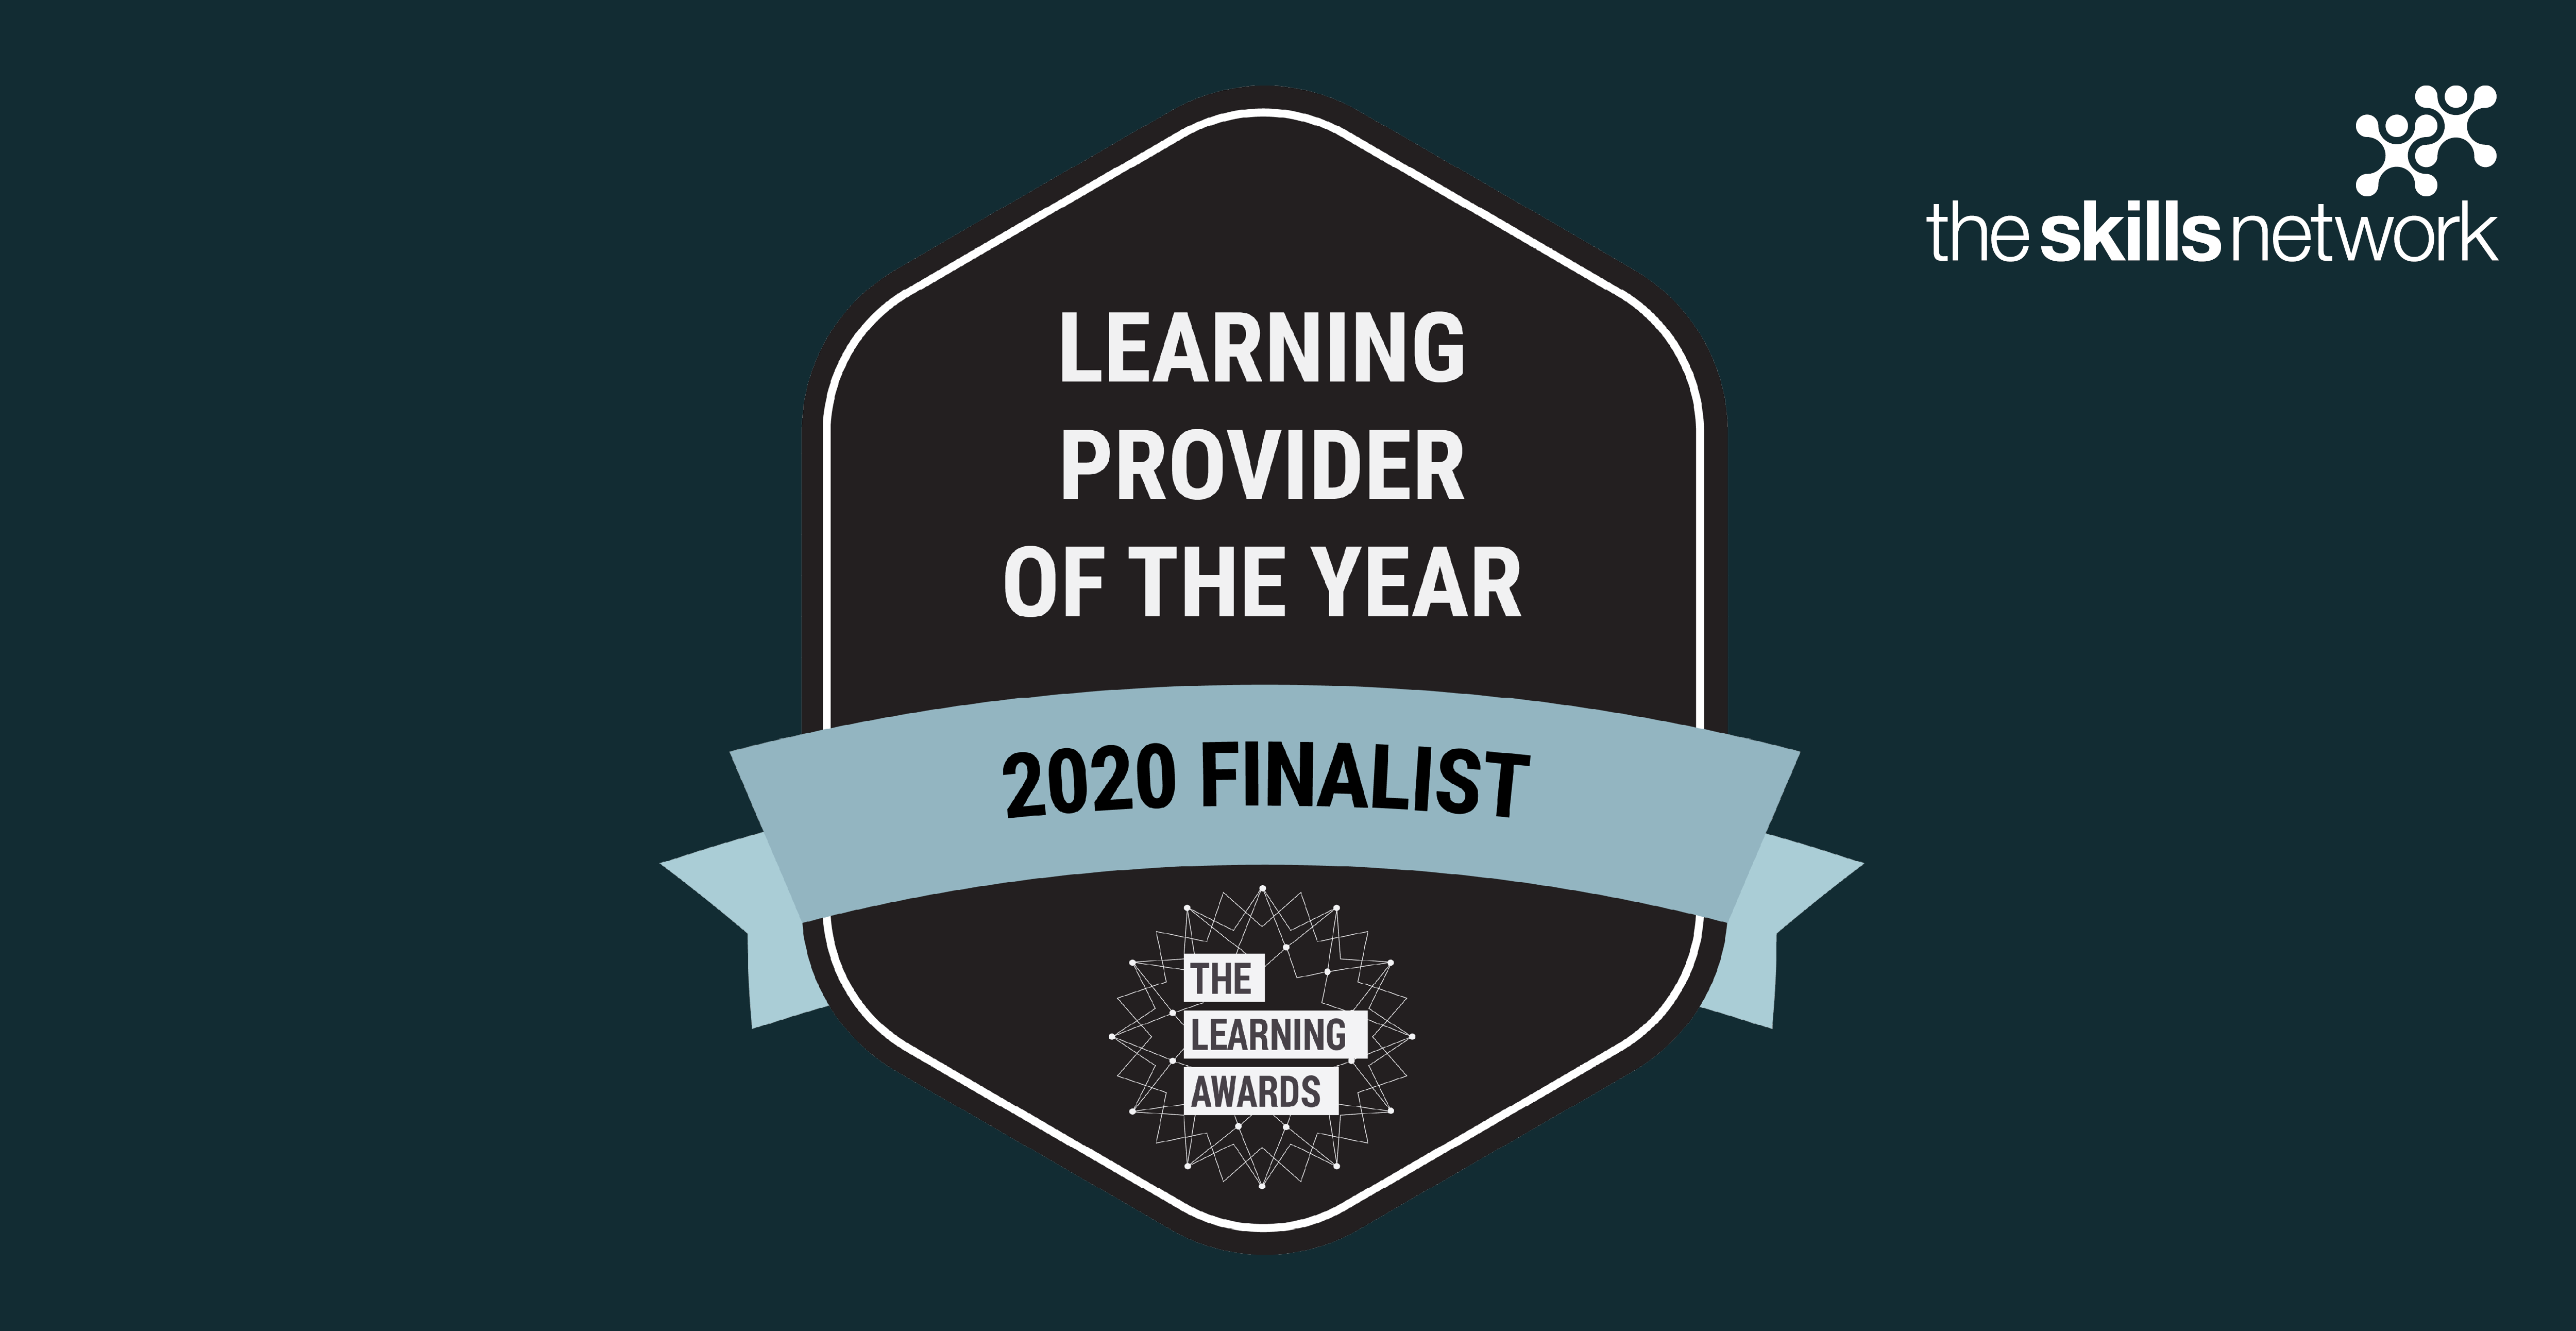 TSN Named as Finalist for 'Learning Provider of The Year' at the 2020 Learning Awards